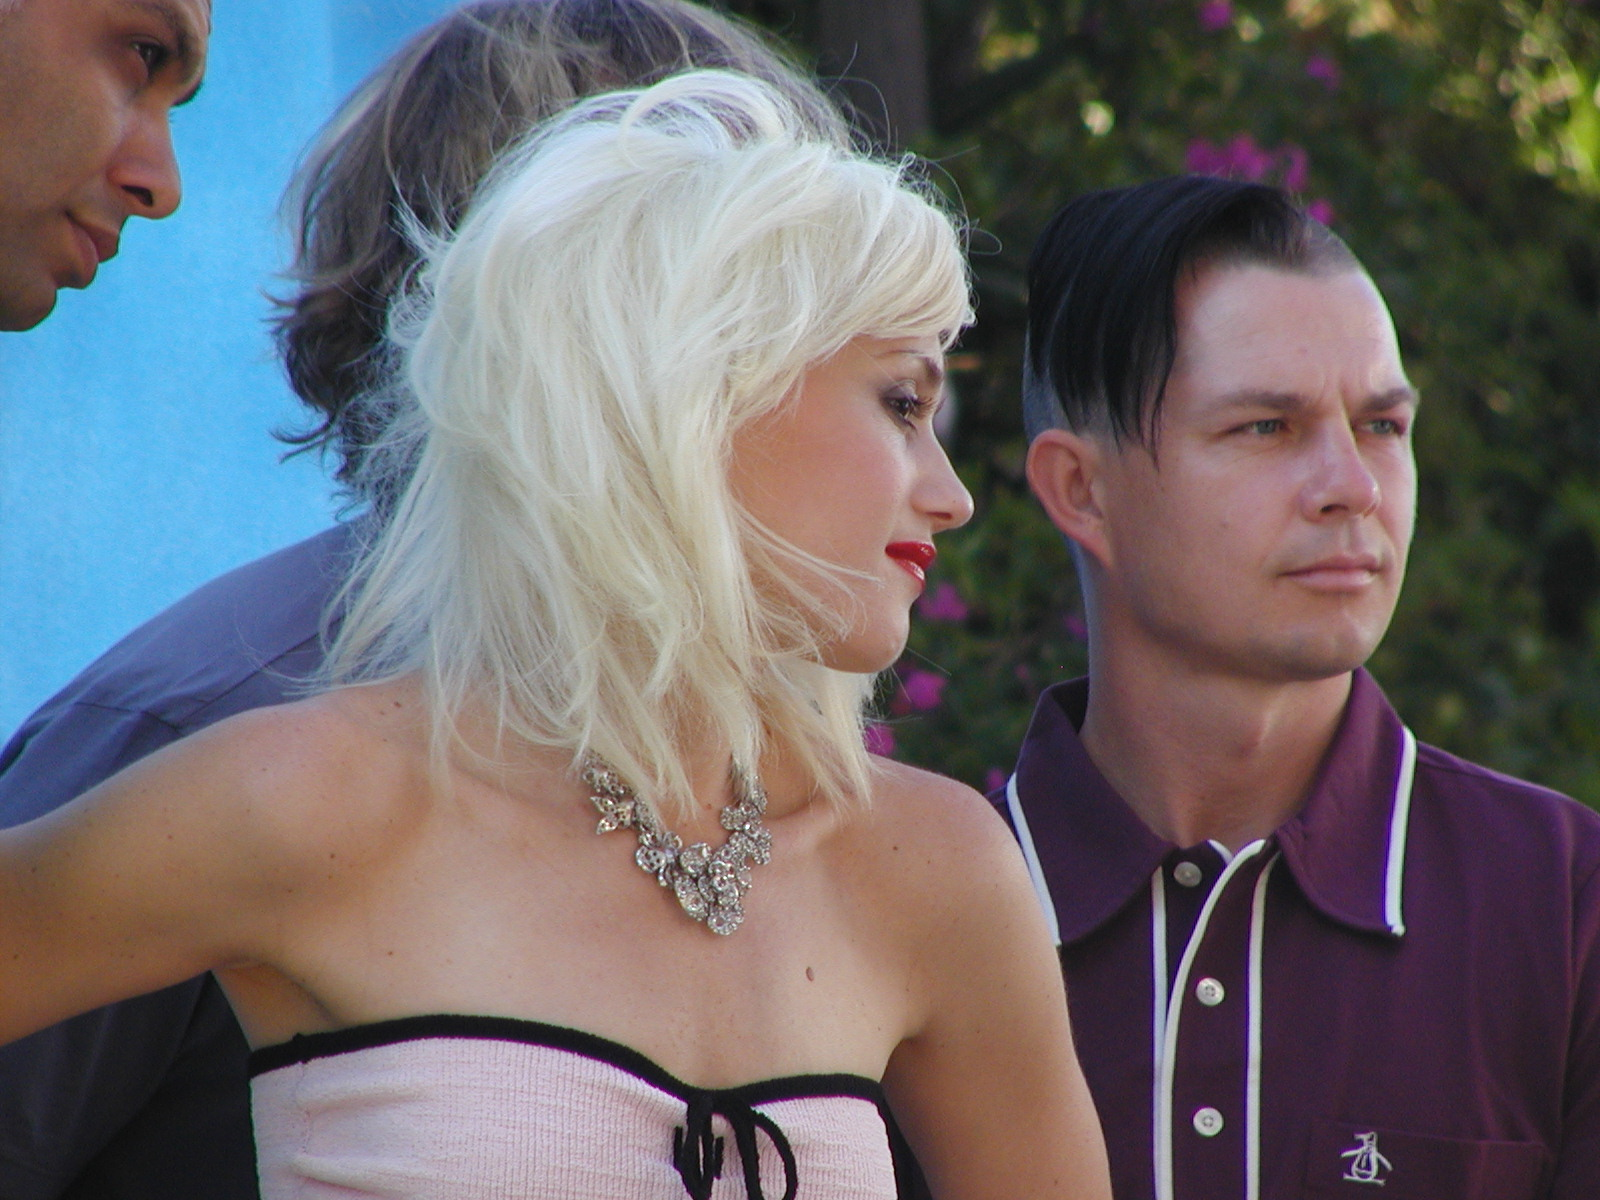 Gwen Stefani with her band No Doubt at Runyon.